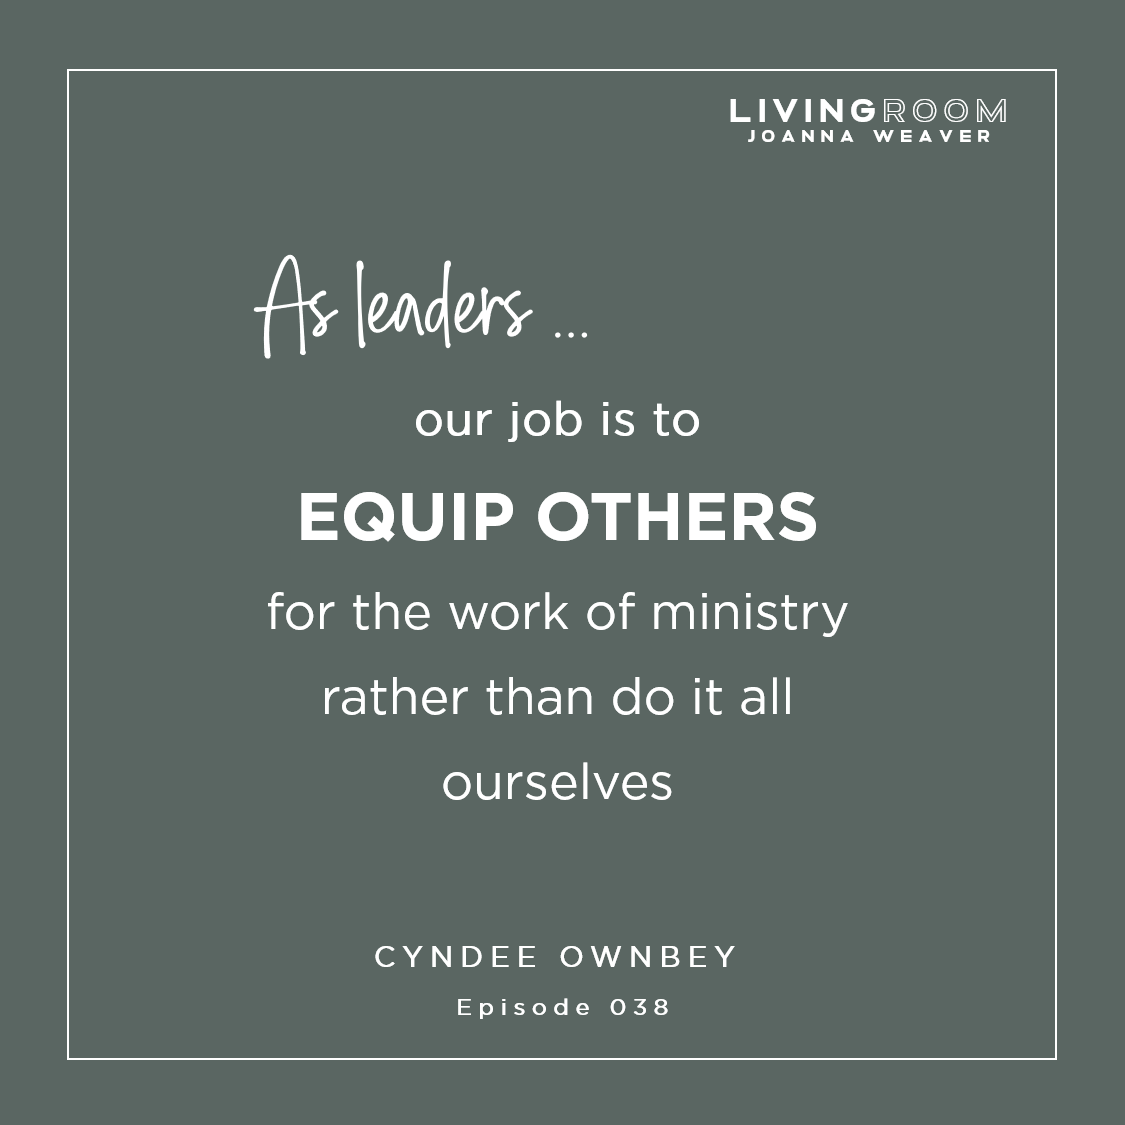 """As leaders, our job is to equip others for the work of ministry rather than do it all ourselves"" - Cyndee Ownbey - The Living Room Podcast - Episode 038"